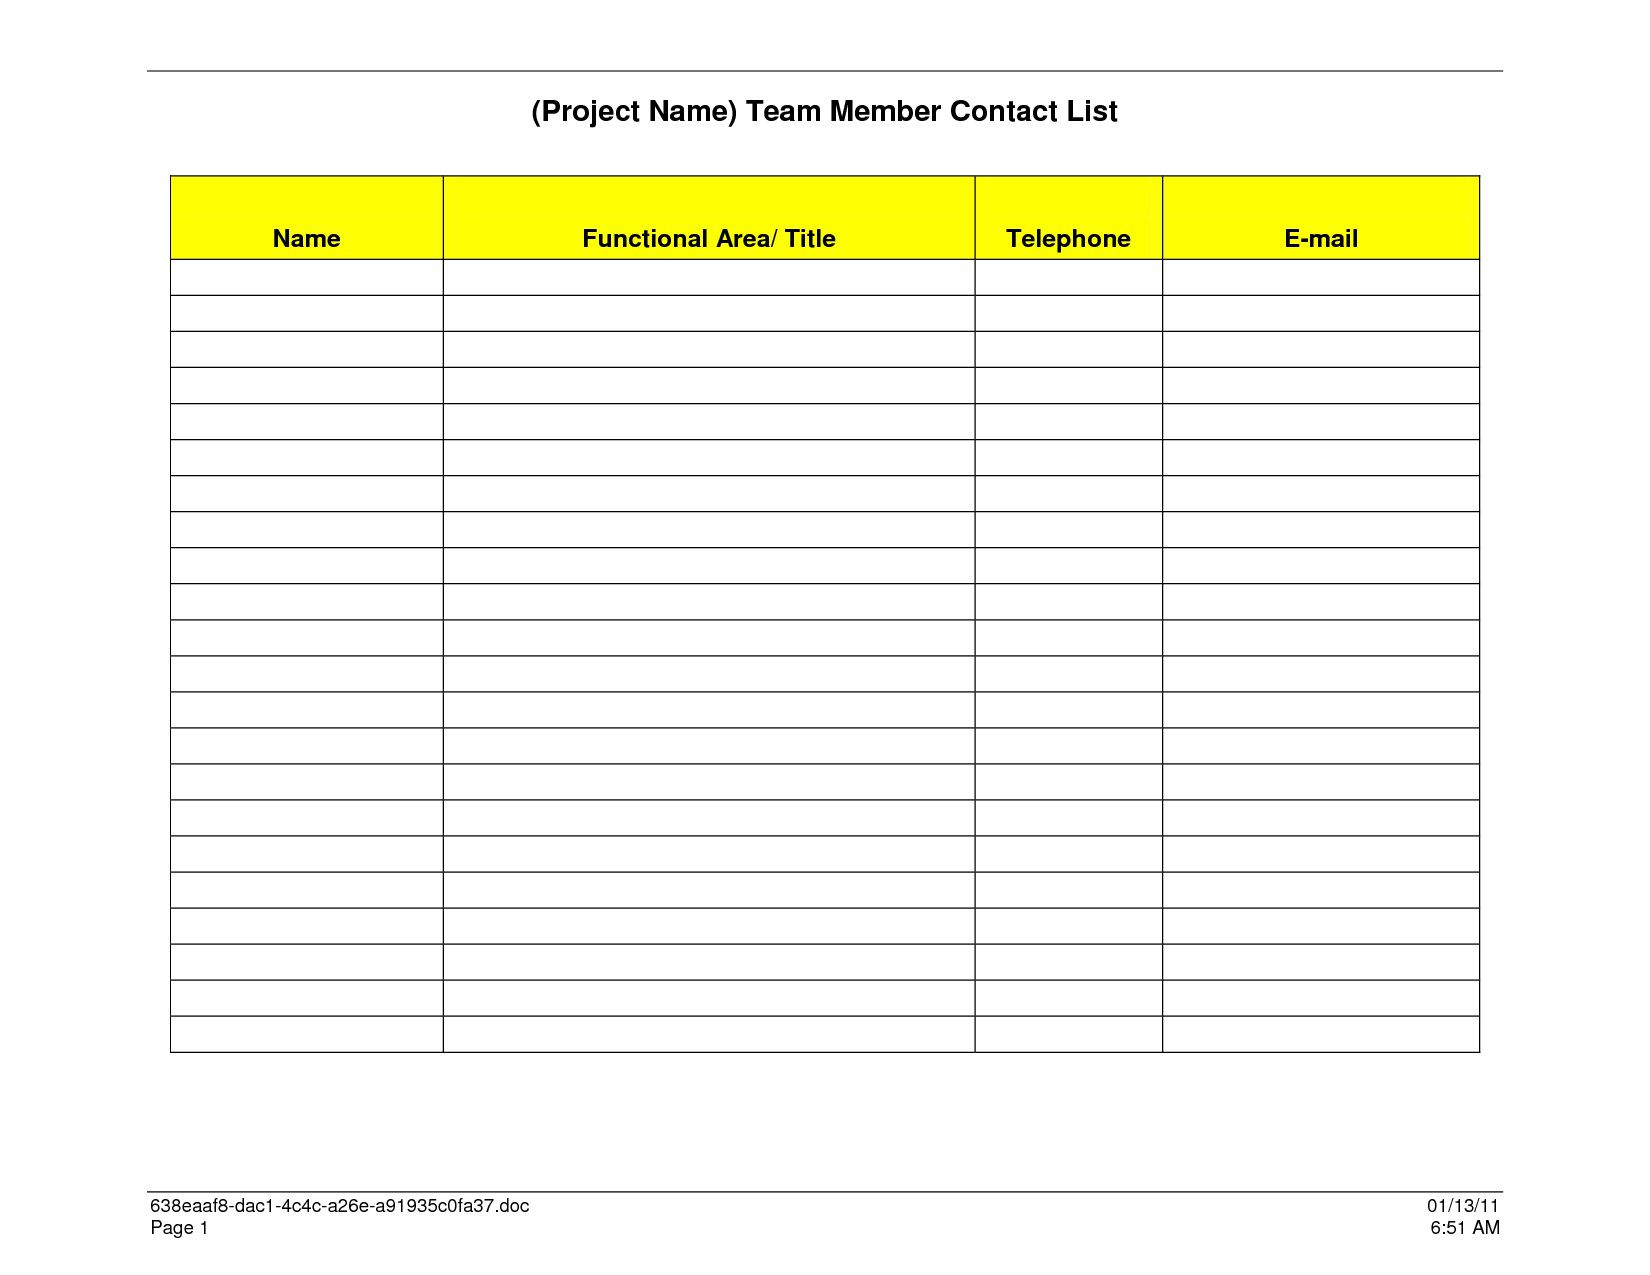 000 Awful Excel Contact List Template Example  Phone Download Spreadsheet TelephoneFull